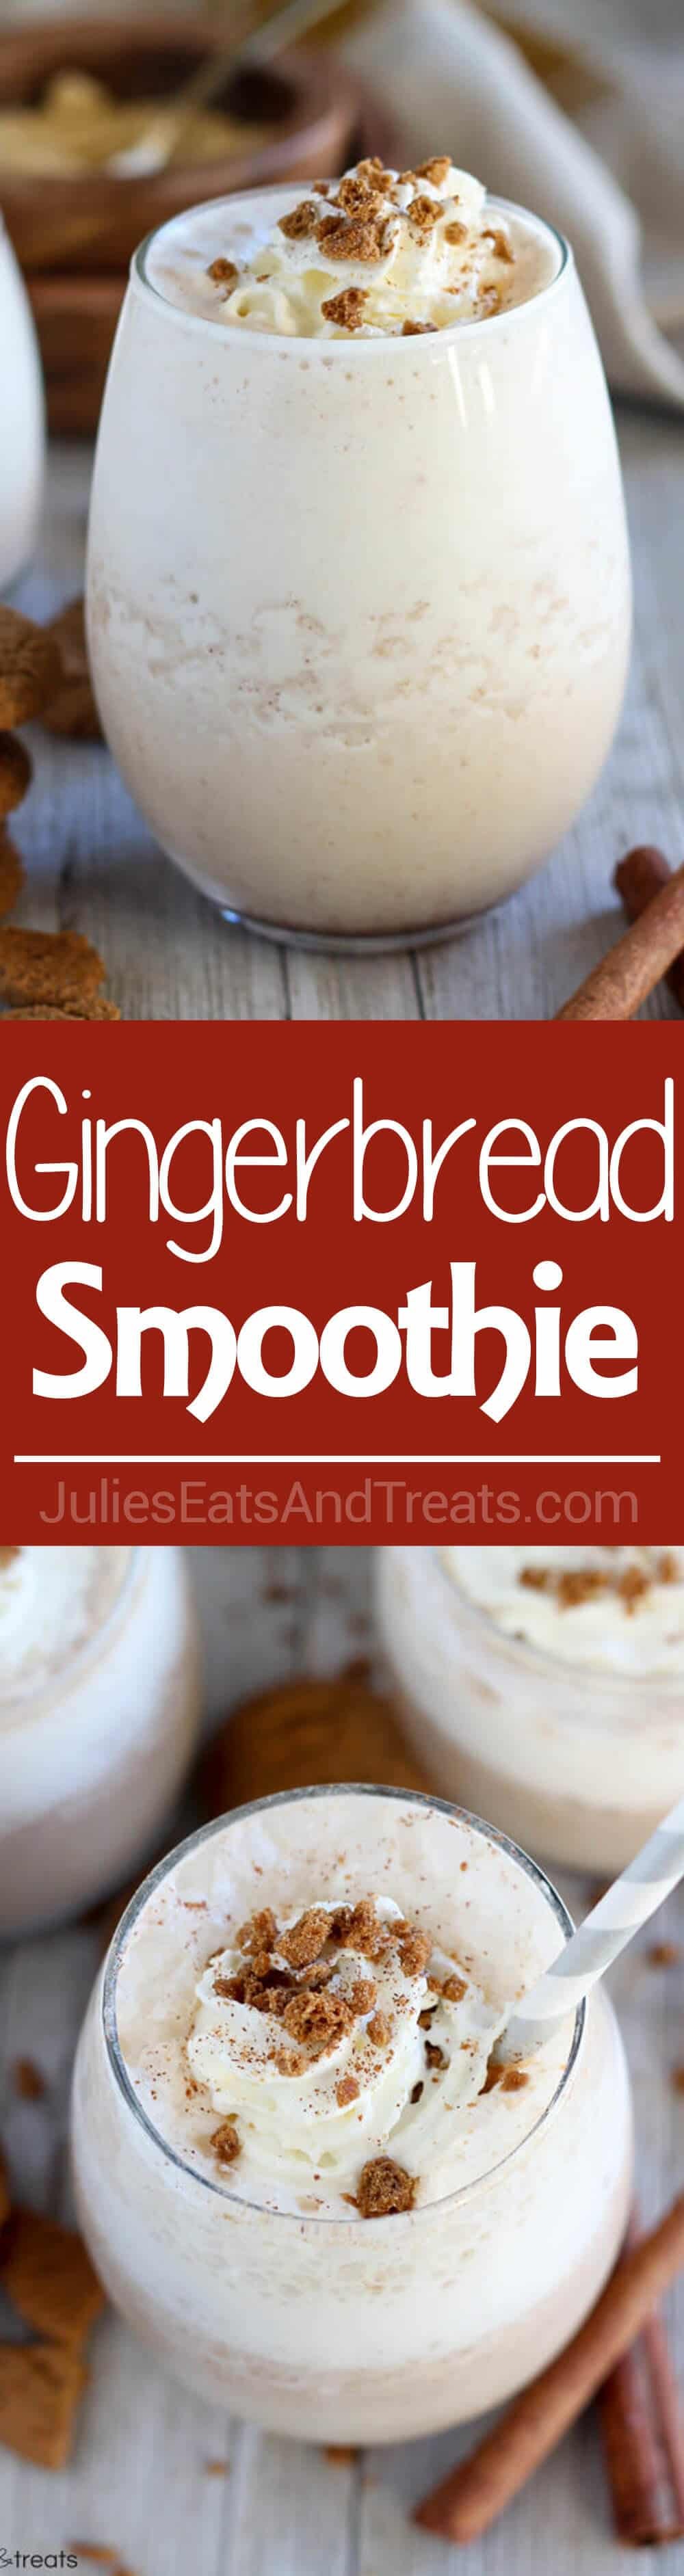 Gingerbread Smoothie ~ Healthy Gingerbread Smoothie Loaded with Classic Gingerbread Flavor. A Quick and Easy Breakfast, Snack, or Dessert for the Holiday Season.